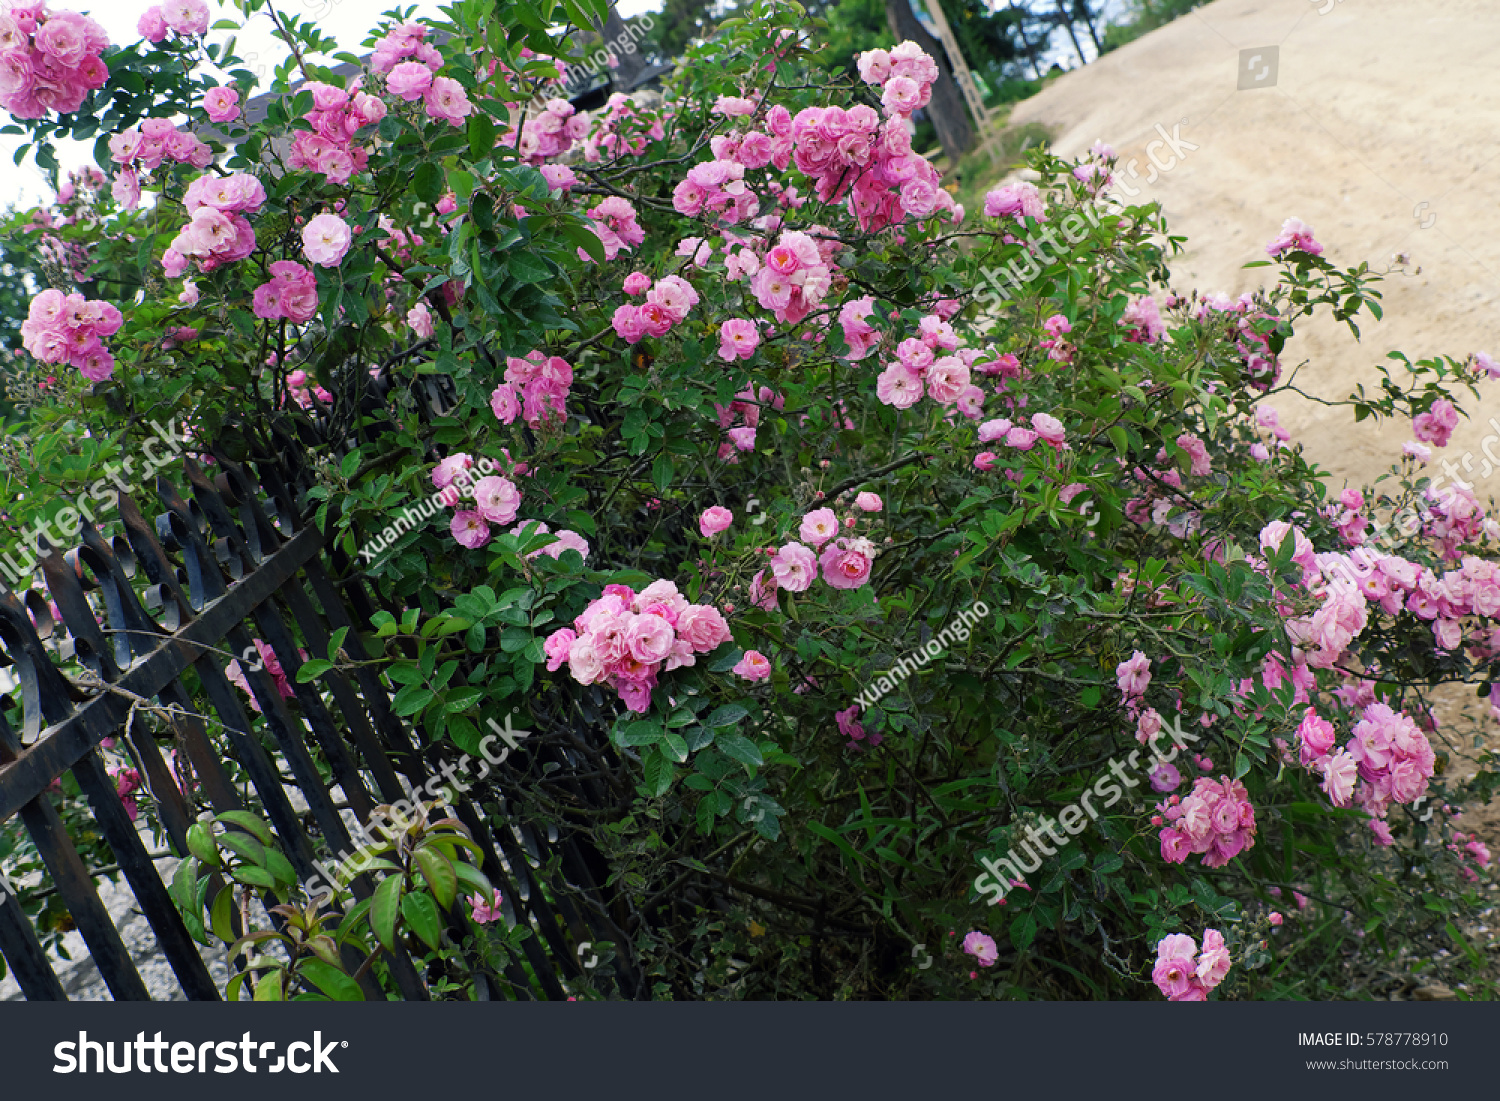 Ho/how to take care of climbing roses for winter - Beautiful Fence Of A Home At Dalat Vietnam Climbing Roses Trellis Front Of The